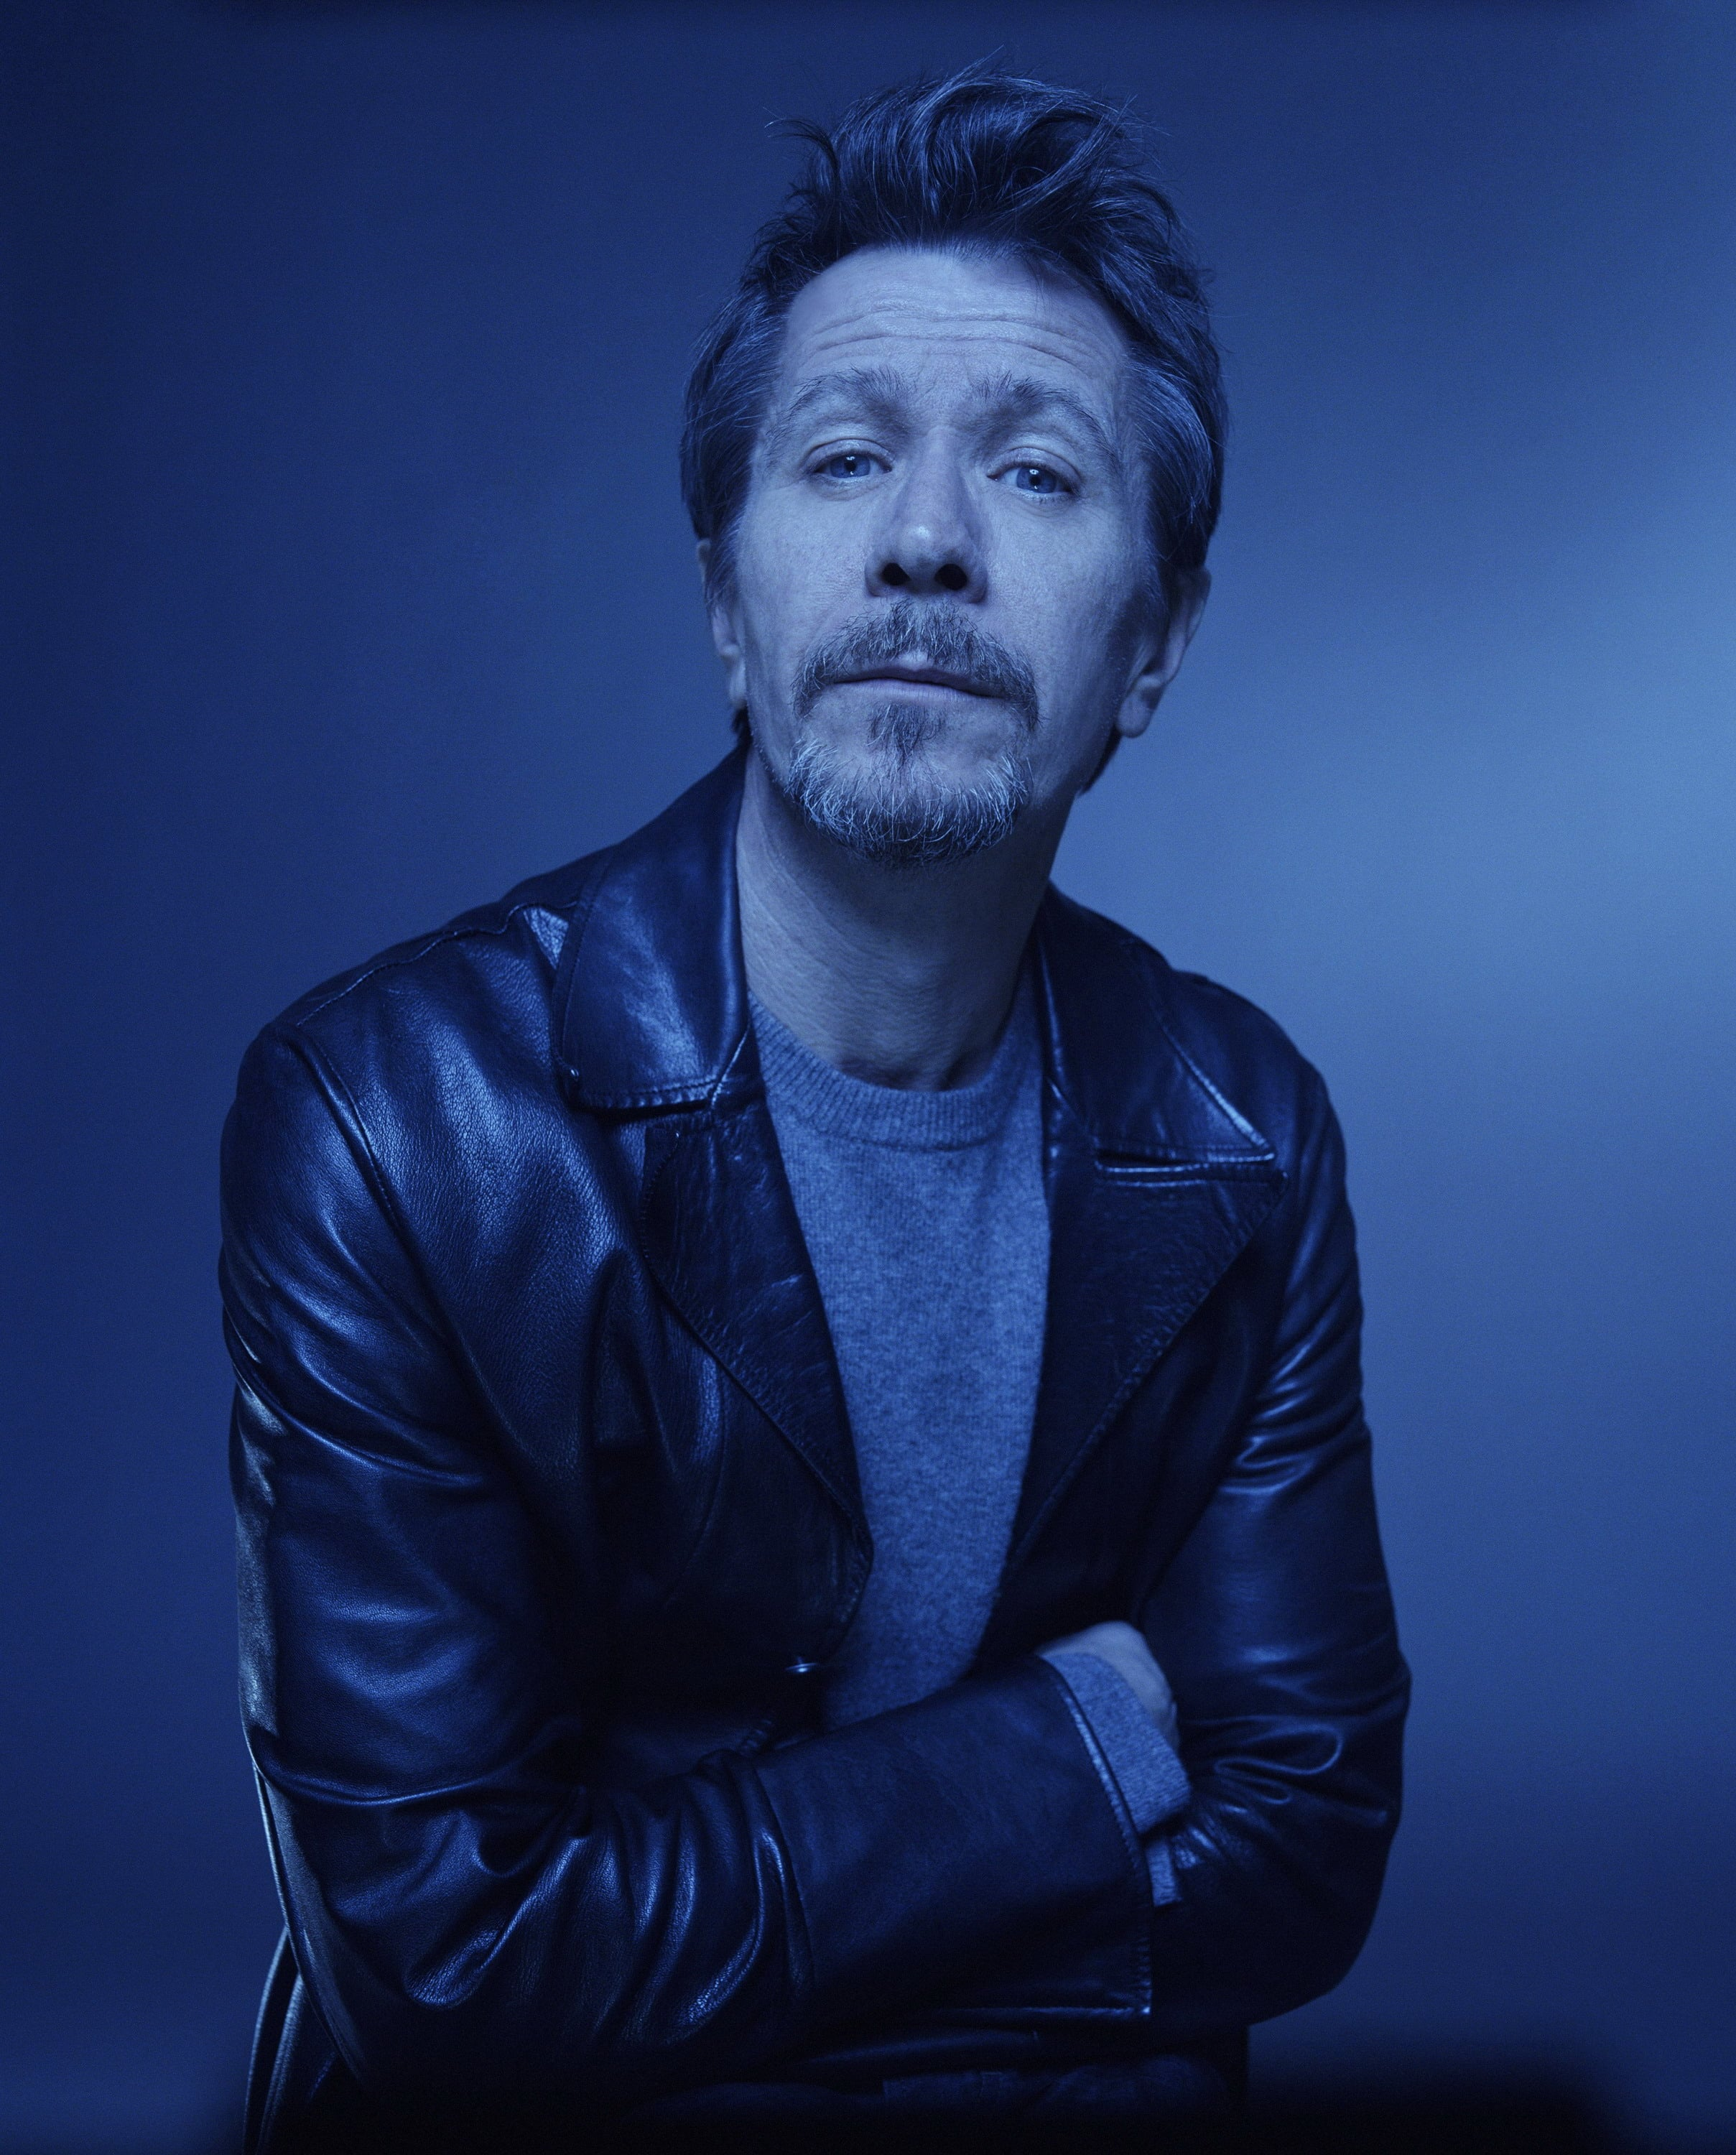 Gary Oldman Backgrounds